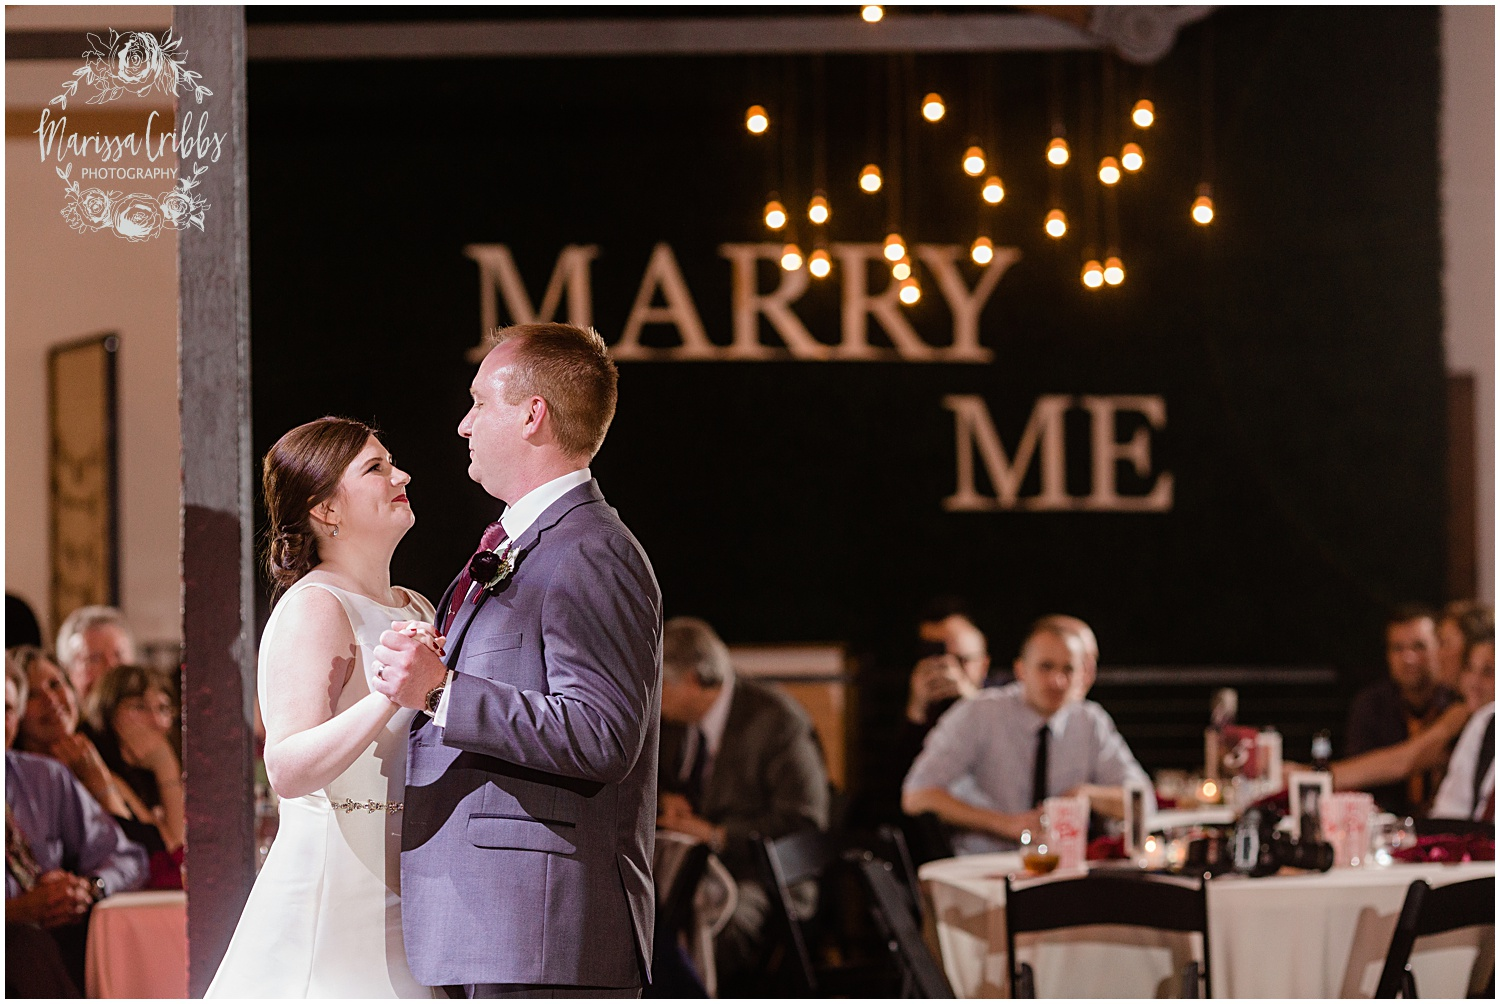 EVERLY EVENT SPACE WEDDING | KATHRYN & KEVIN | MARISSA CRIBBS PHOTOGRAPHY_7460.jpg